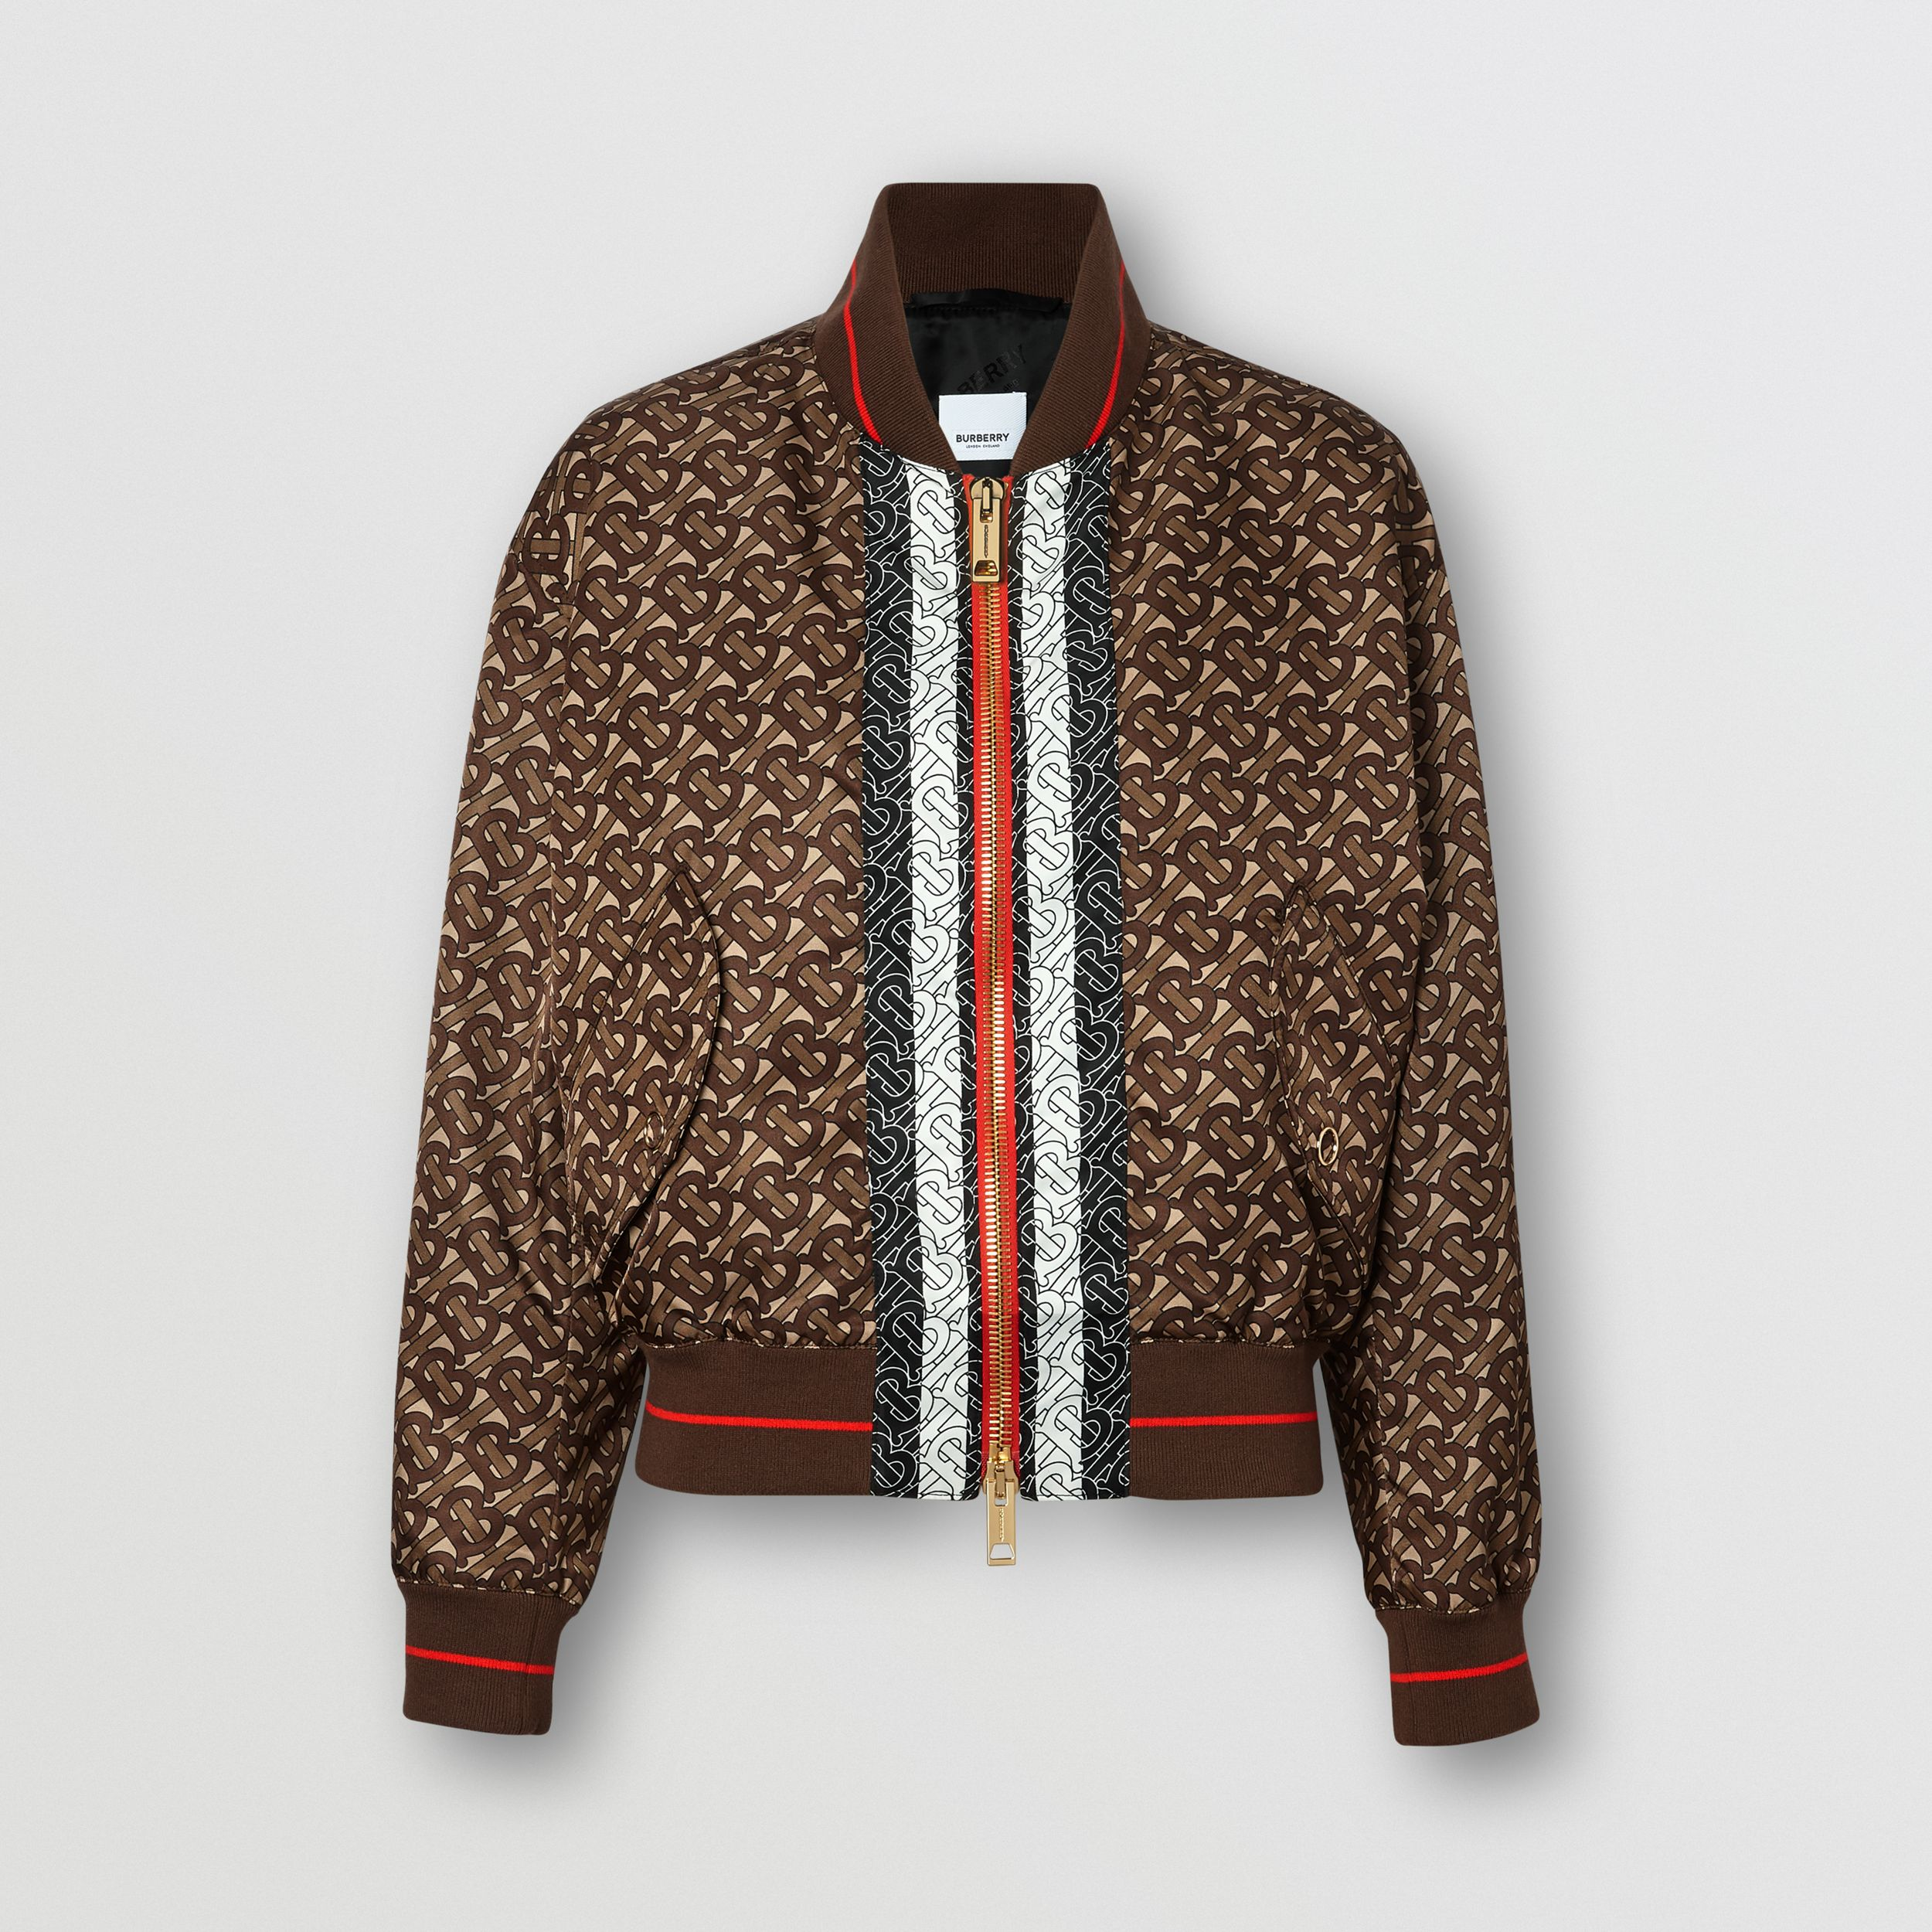 Monogram Stripe Print Nylon Bomber Jacket in Bridle Brown - Women | Burberry - 4